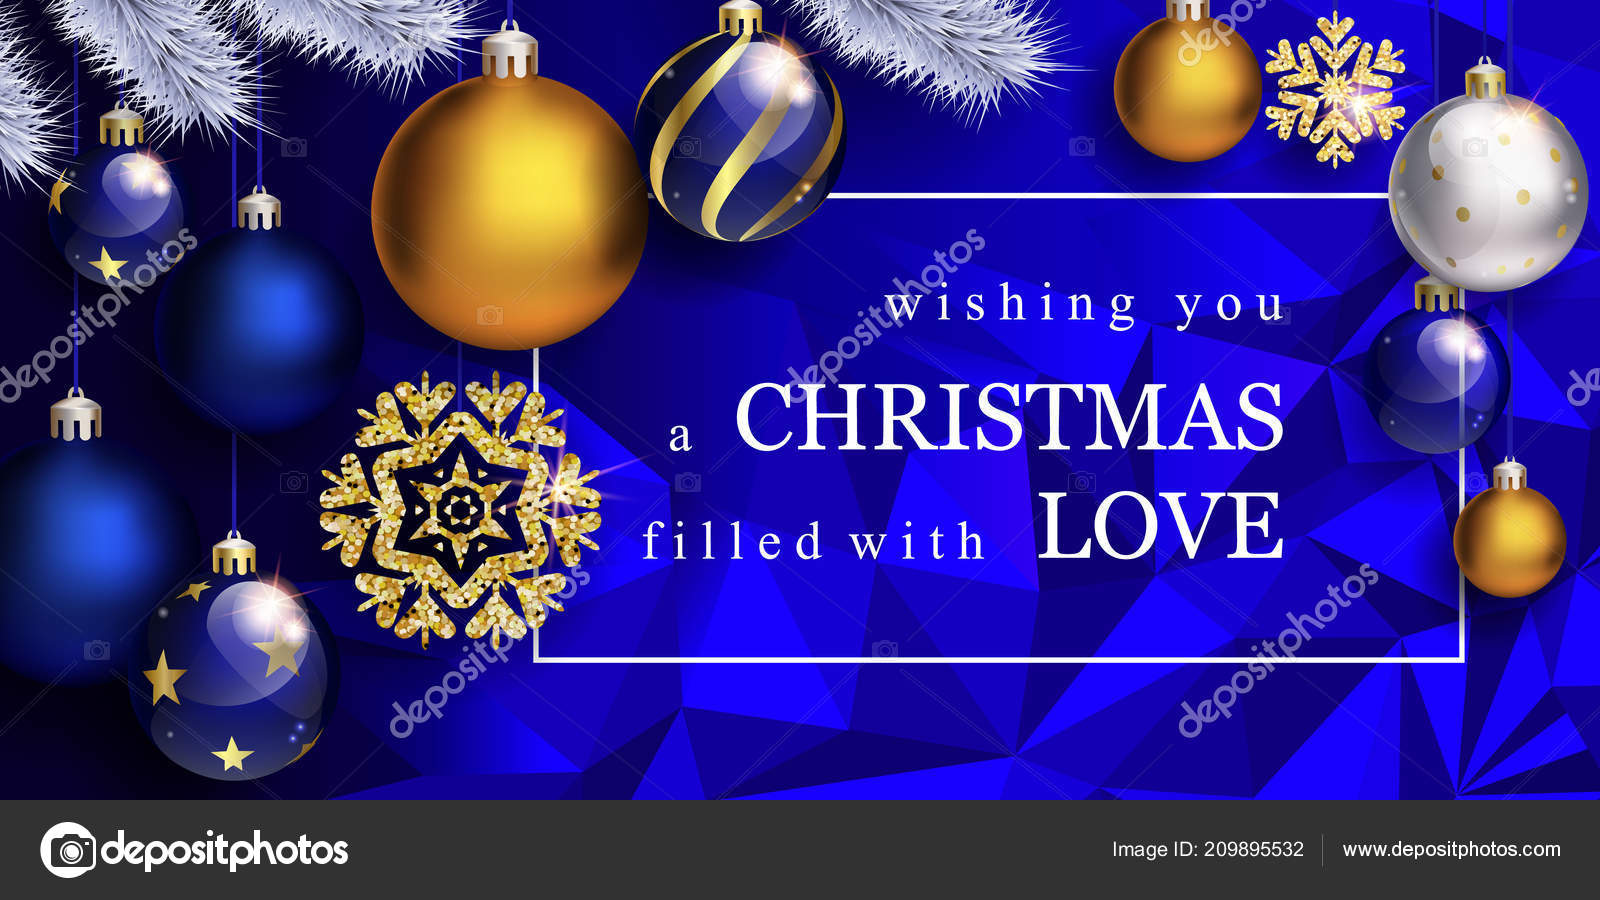 blue modern christmas background stock vector c rytova maria yandex ru 209895532 https depositphotos com 209895532 stock illustration blue modern christmas background html